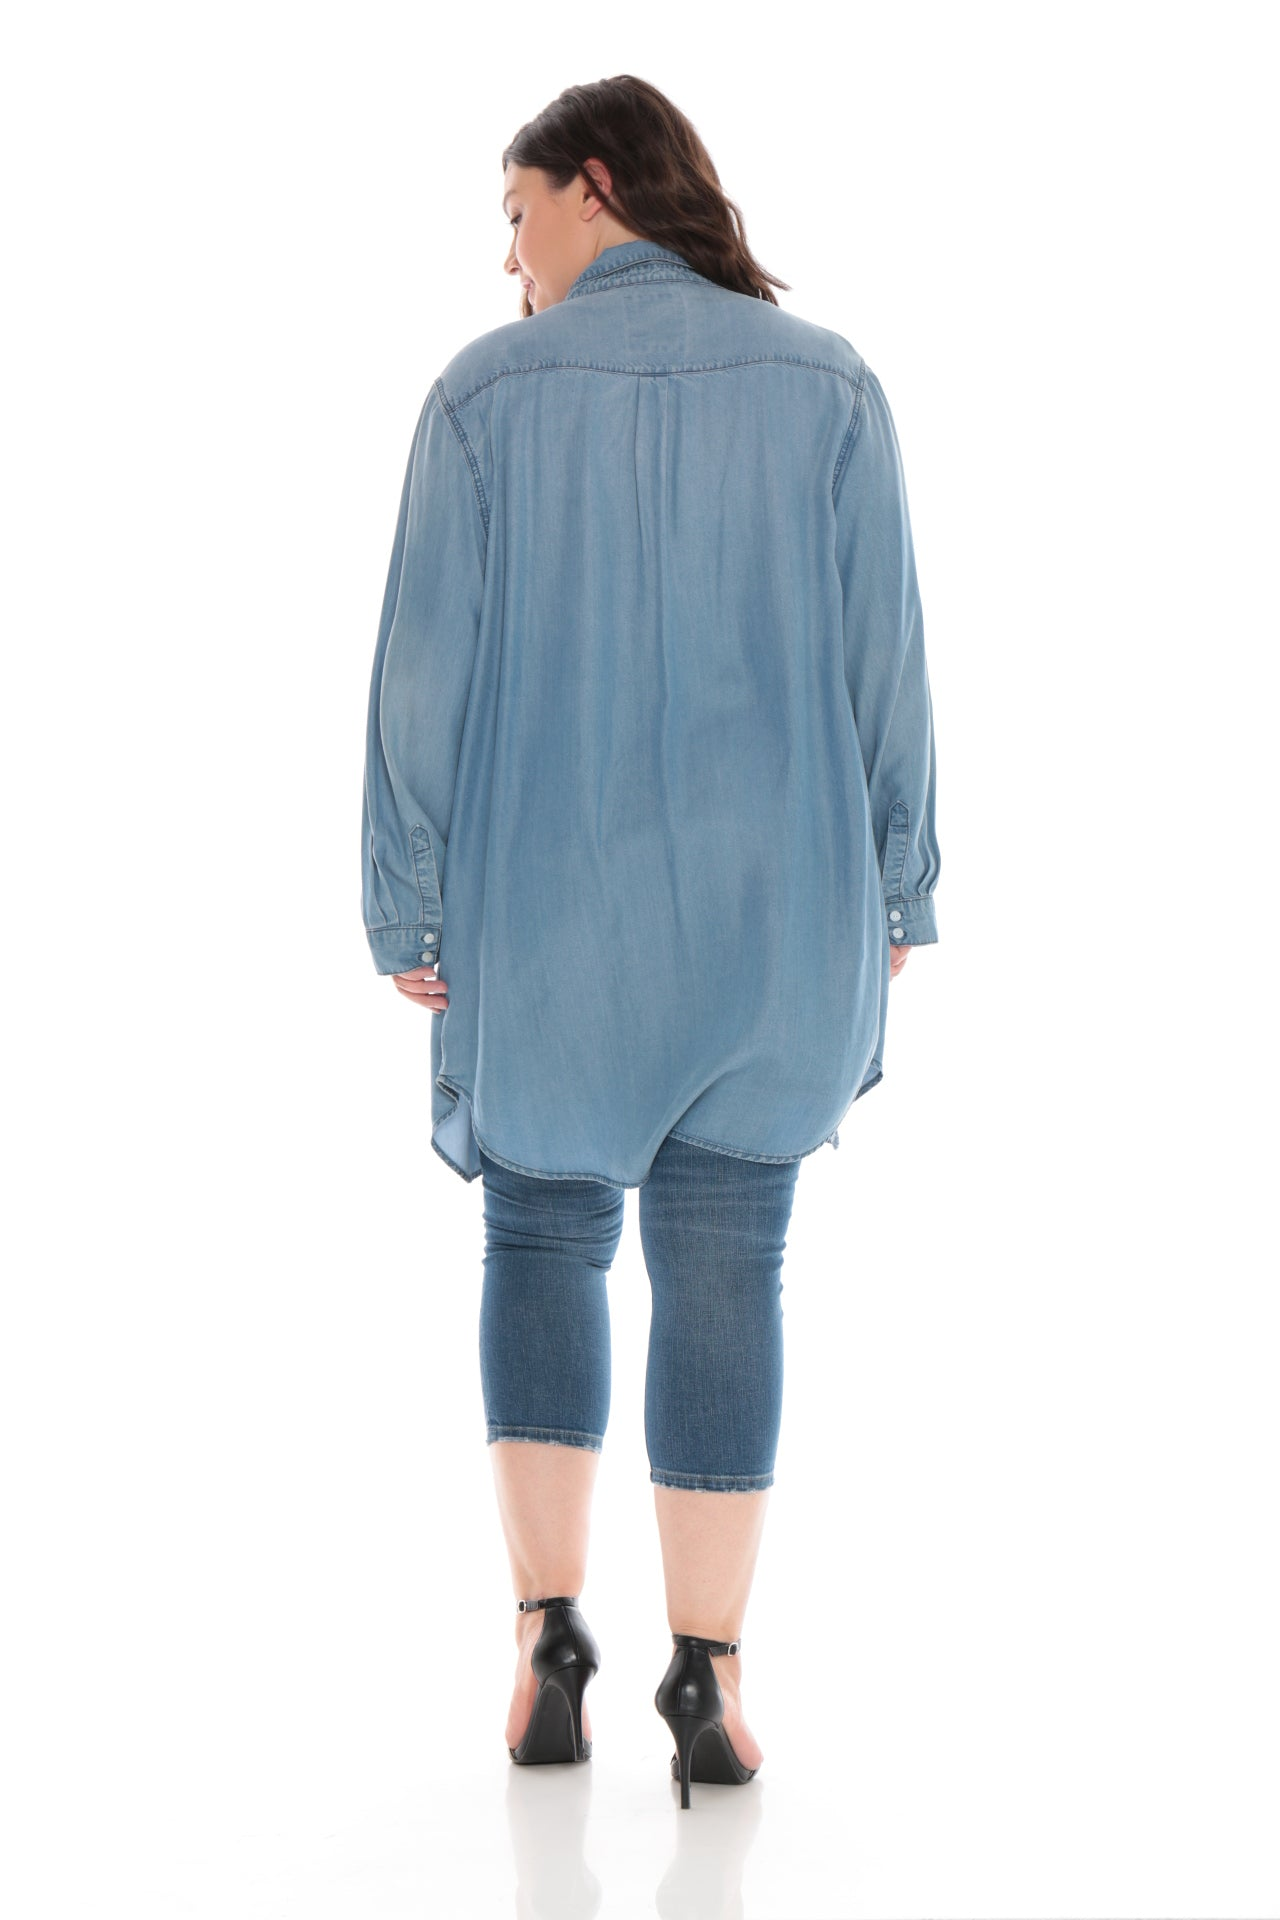 The Tunic Button Down - SKY